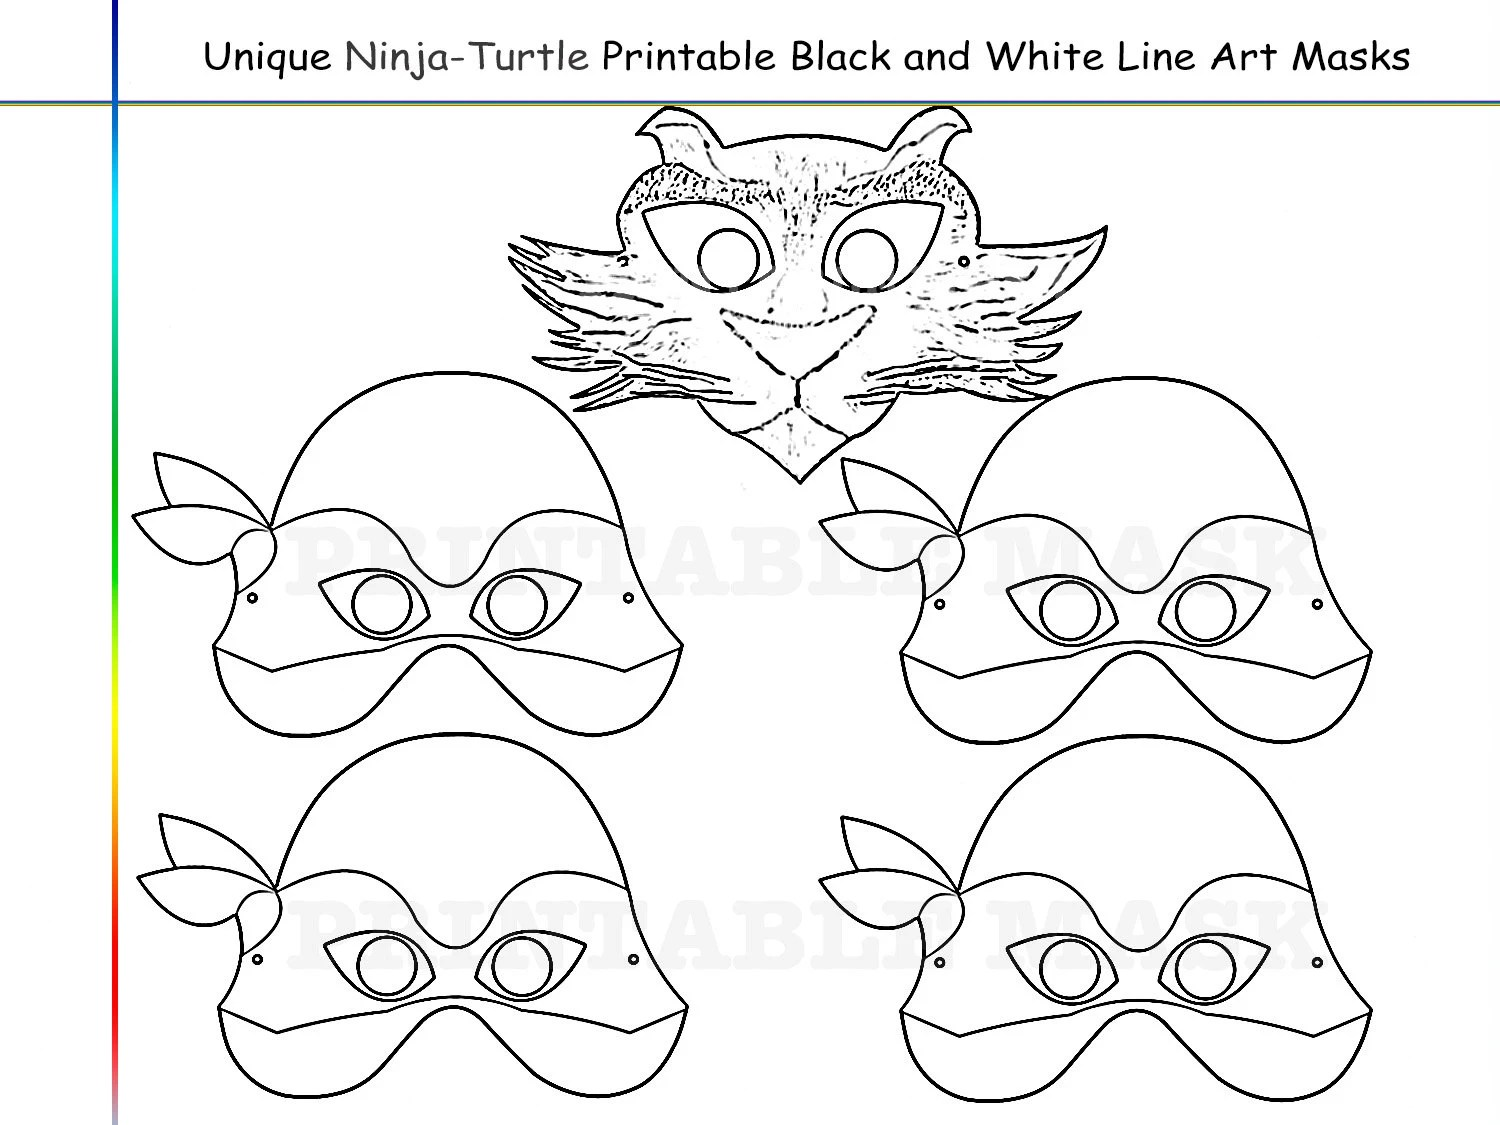 Coloring Pages Ninja-Turtles Party Printable Black and